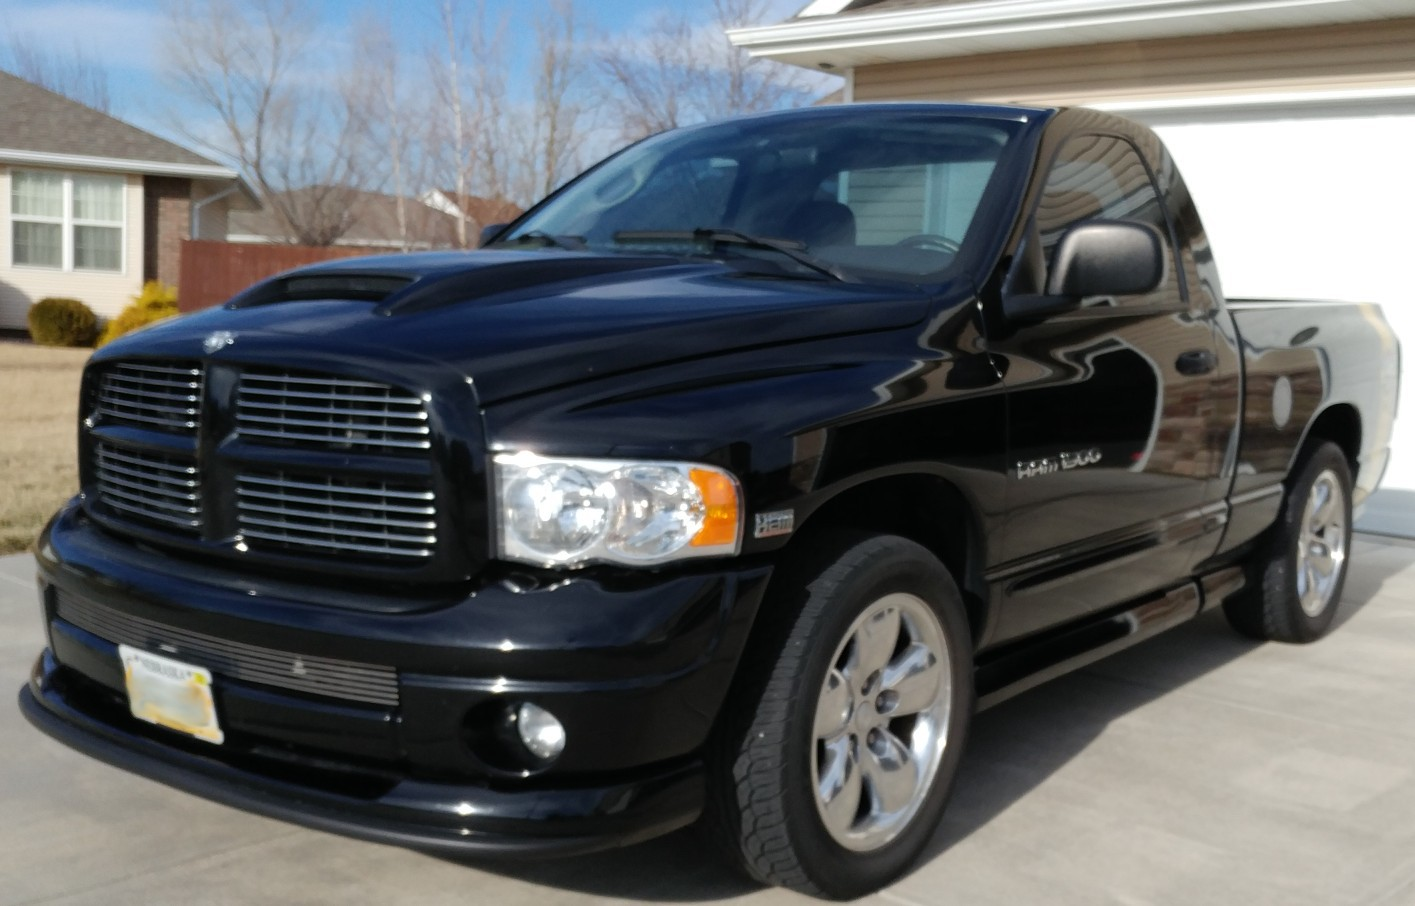 for sale 2004 dodge ram 1500 4x4 rumble bee. Black Bedroom Furniture Sets. Home Design Ideas